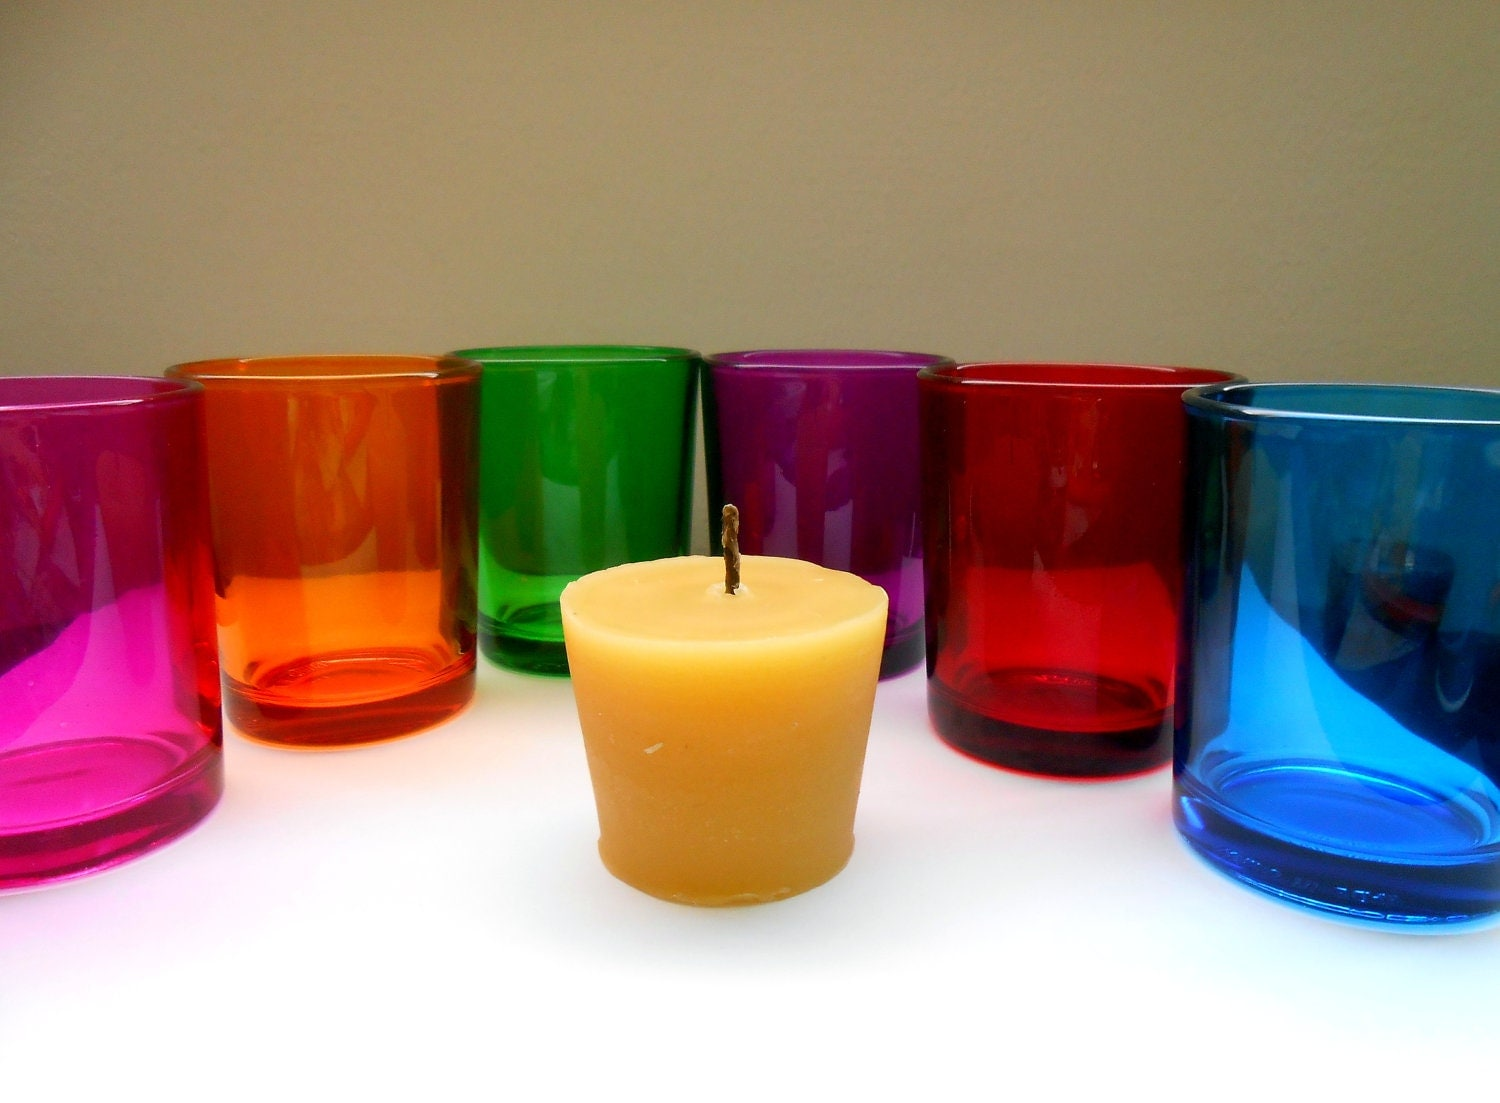 Pure Natural Beeswax Votive Candles with colorful holders